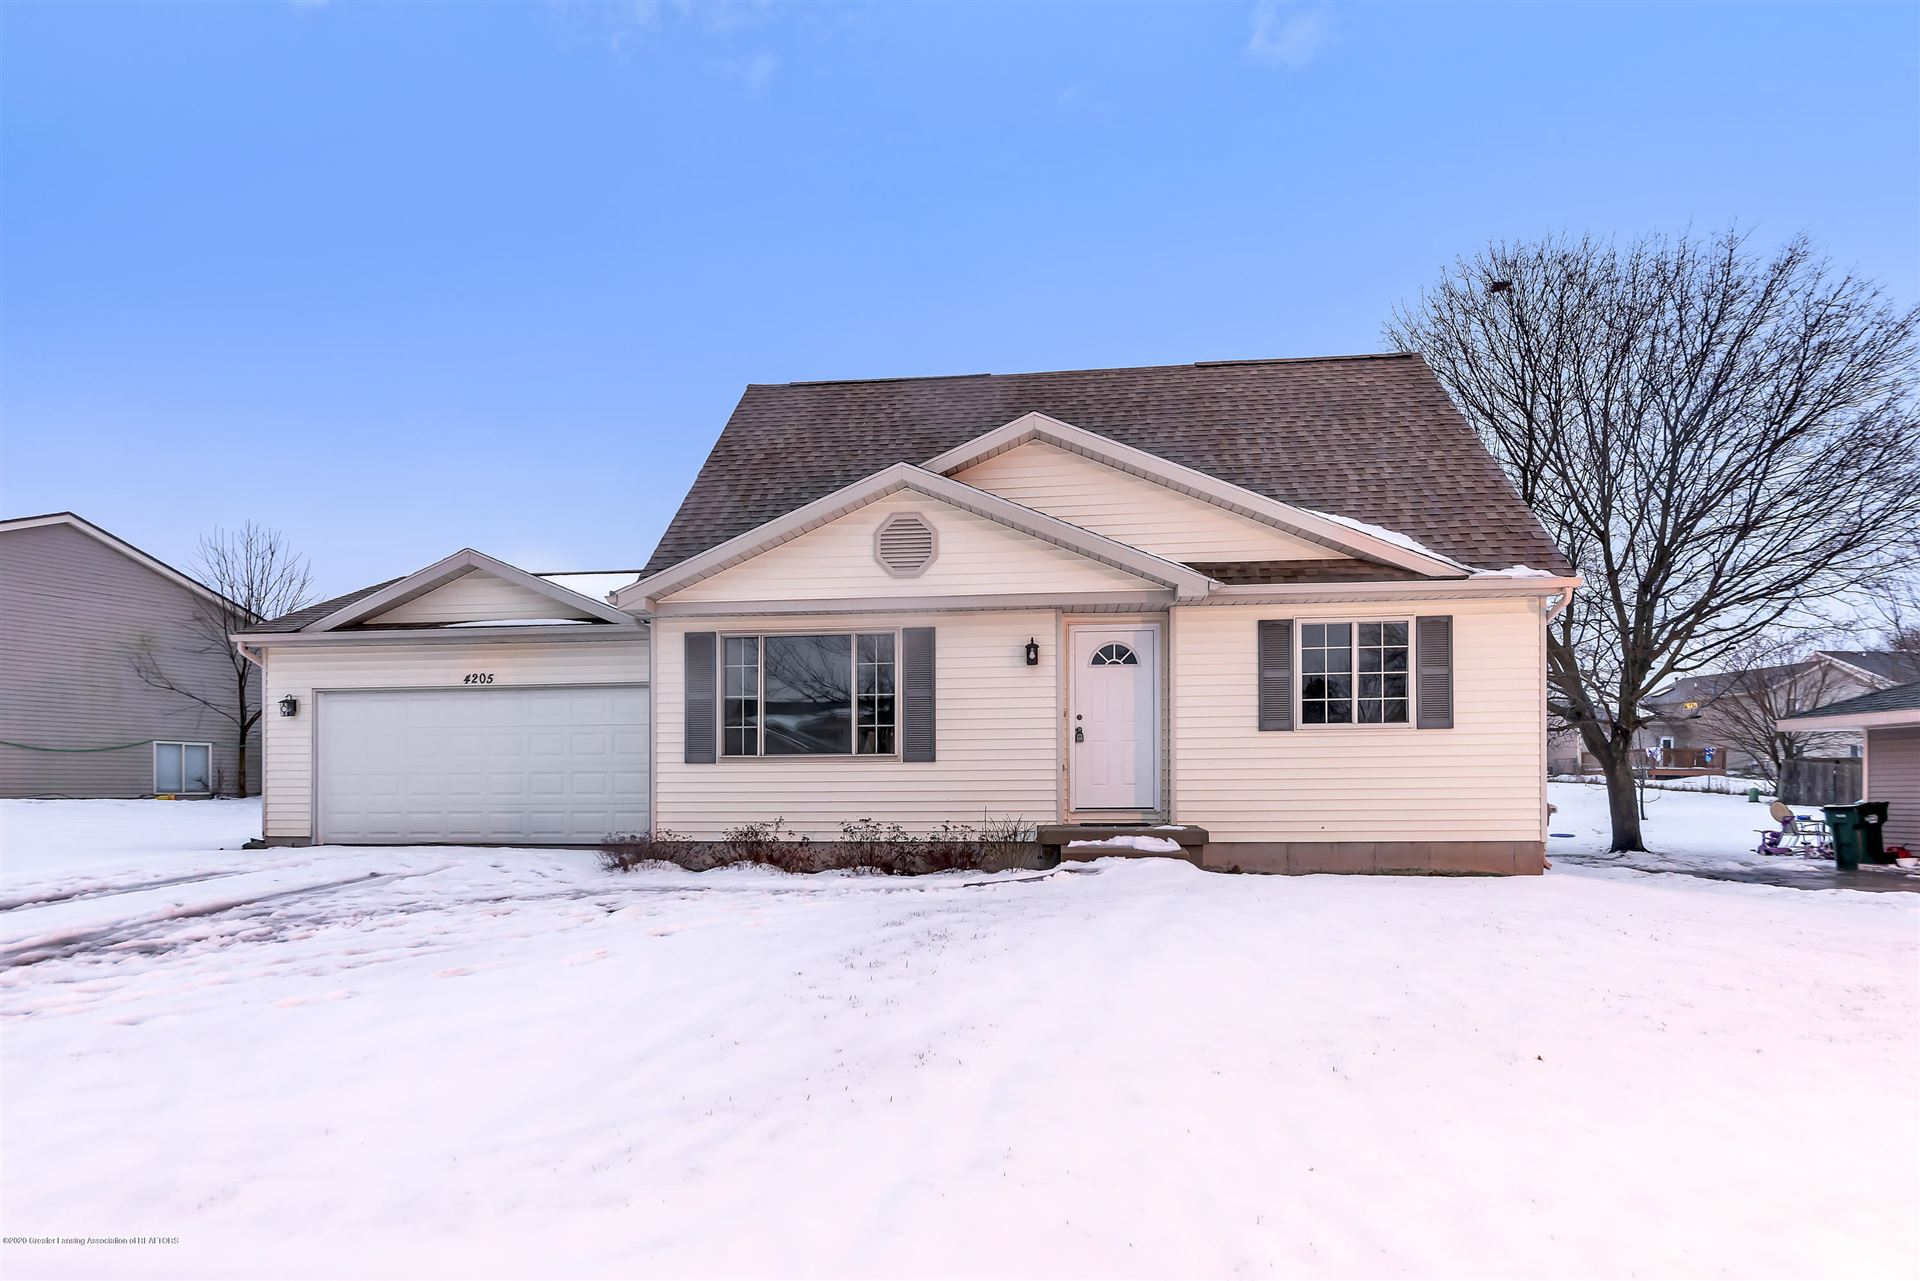 Photo of 4205 Balmoral Drive, Lansing, MI 48911 (MLS # 243801)